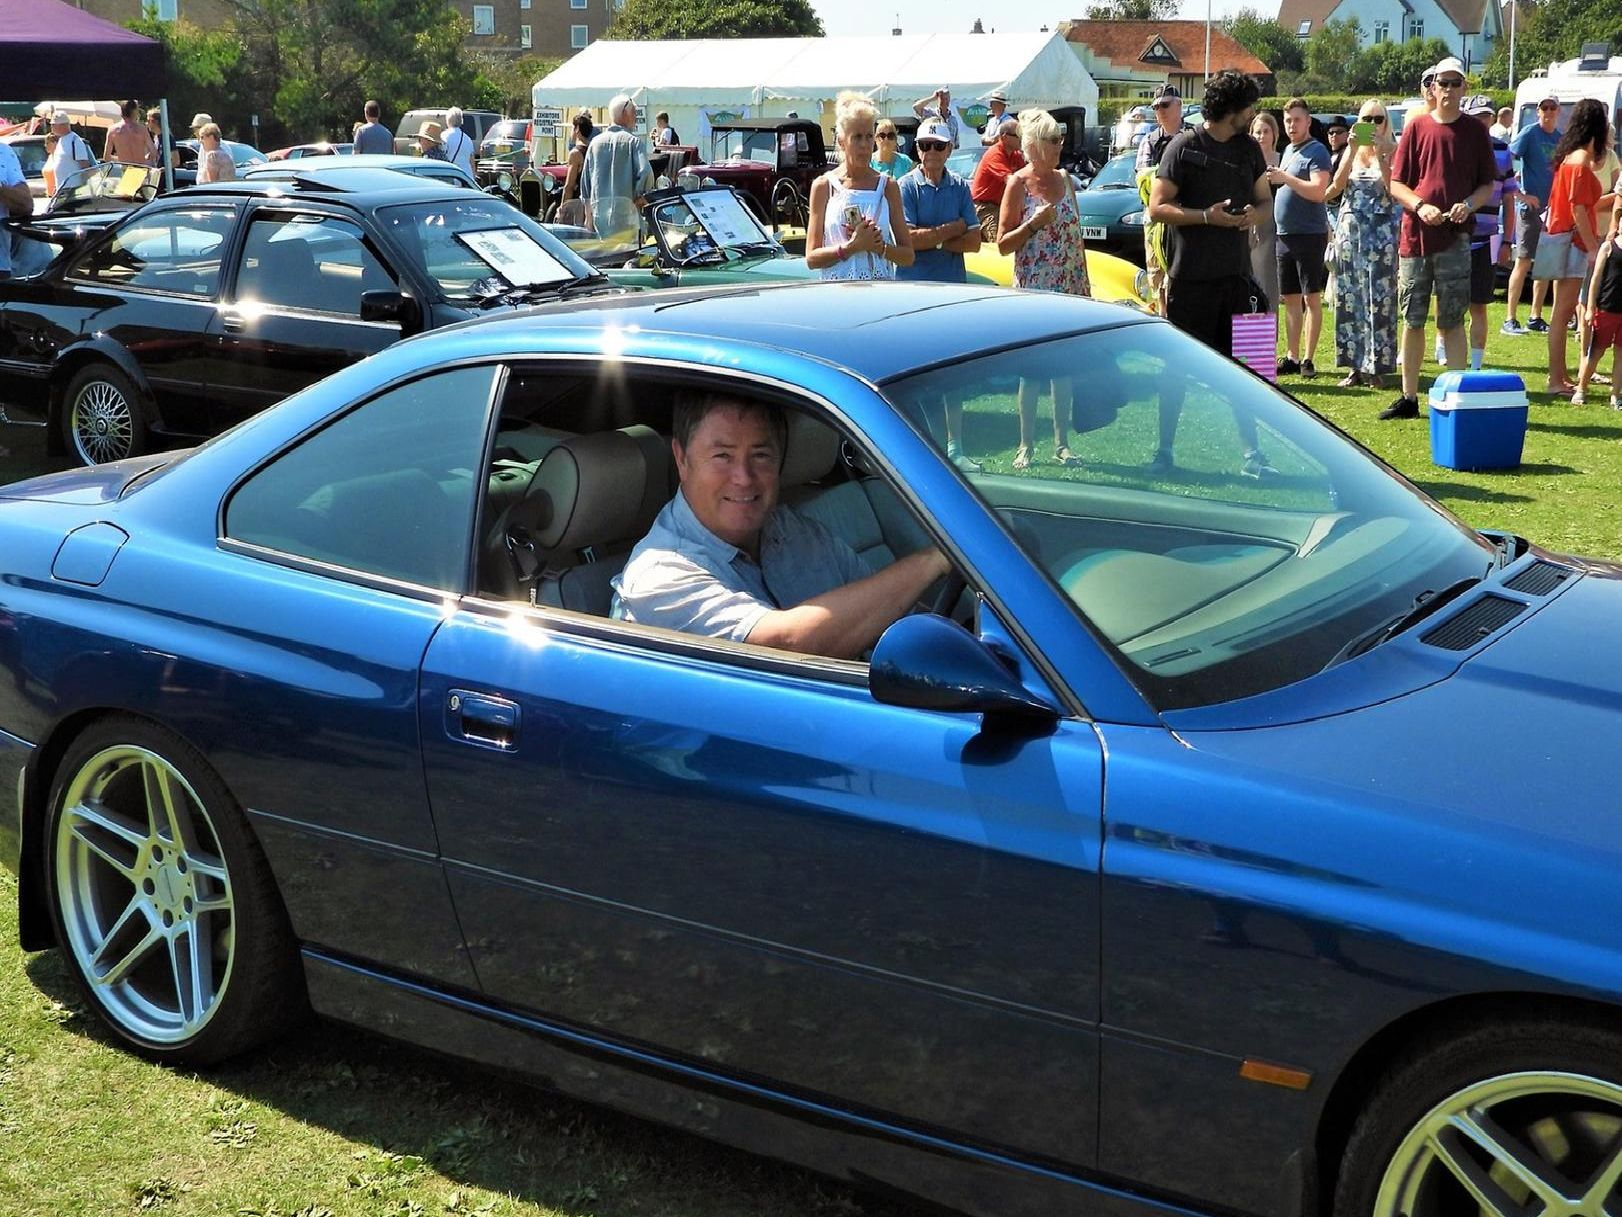 Bexhill Classic Car Show. Photo by Sid Saunders.